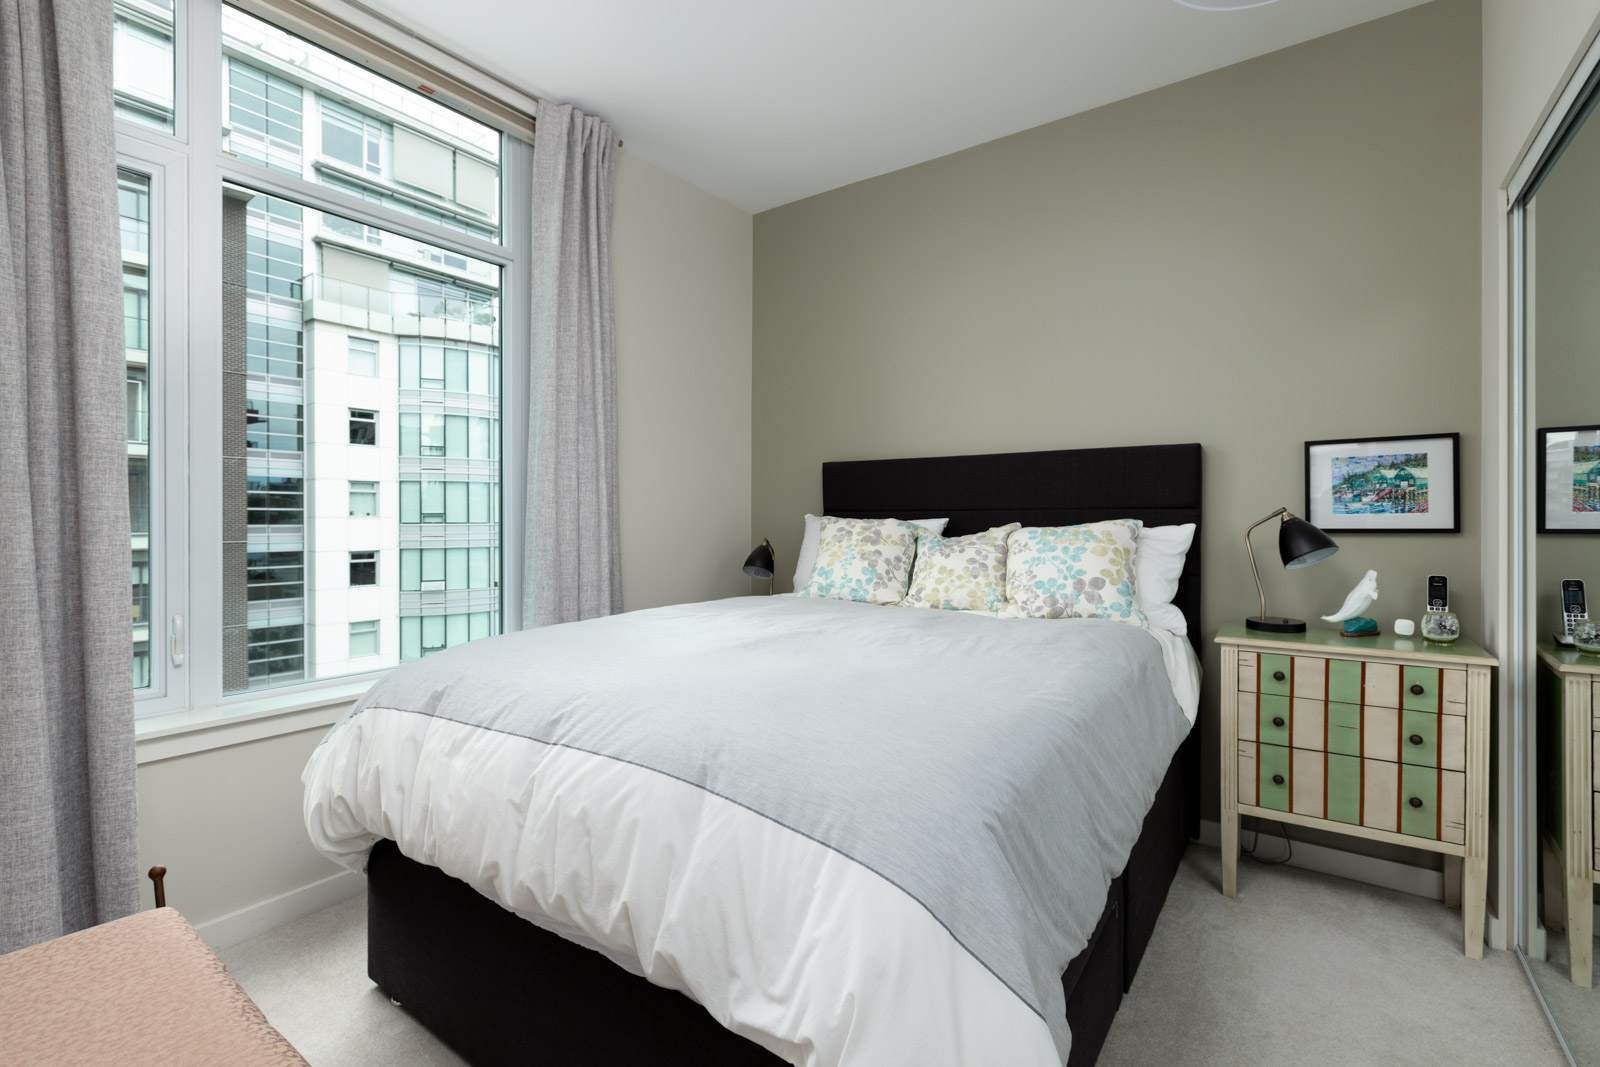 bedroom with white walls and hardwood floors in rental condo in the False Creek neighbourhood of Vancouver